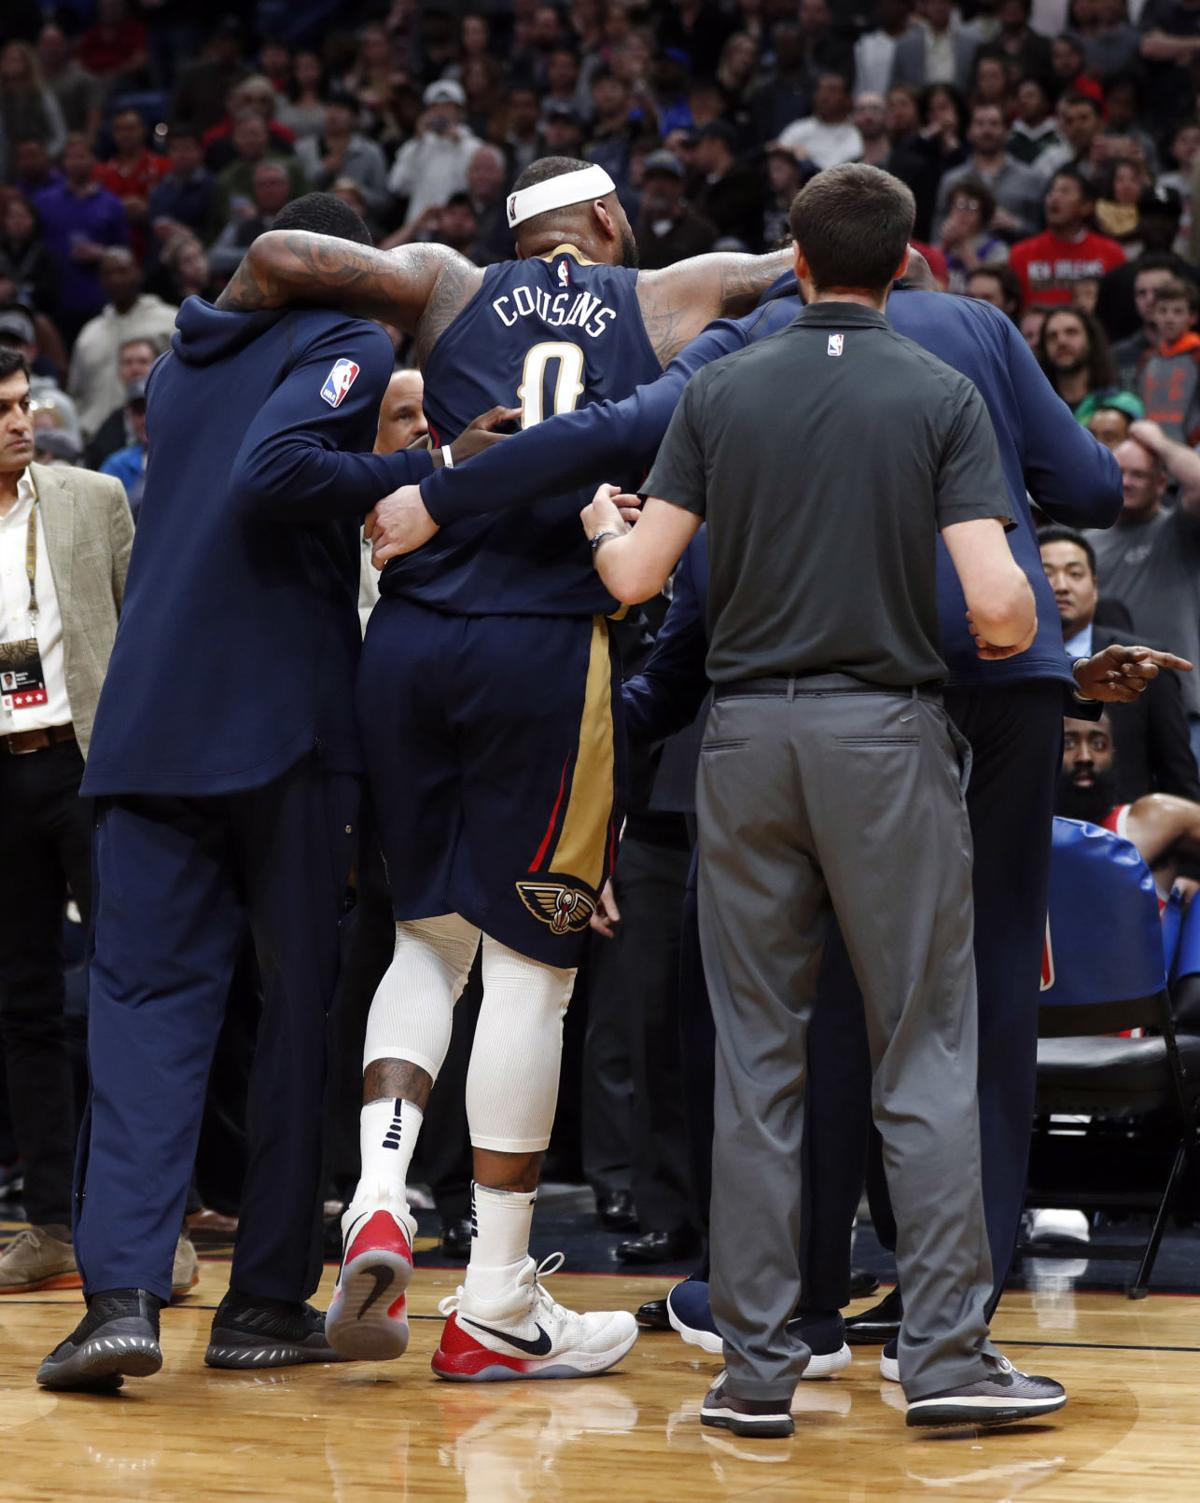 After DeMarcus Cousins' season-ending injury, the Pelicans